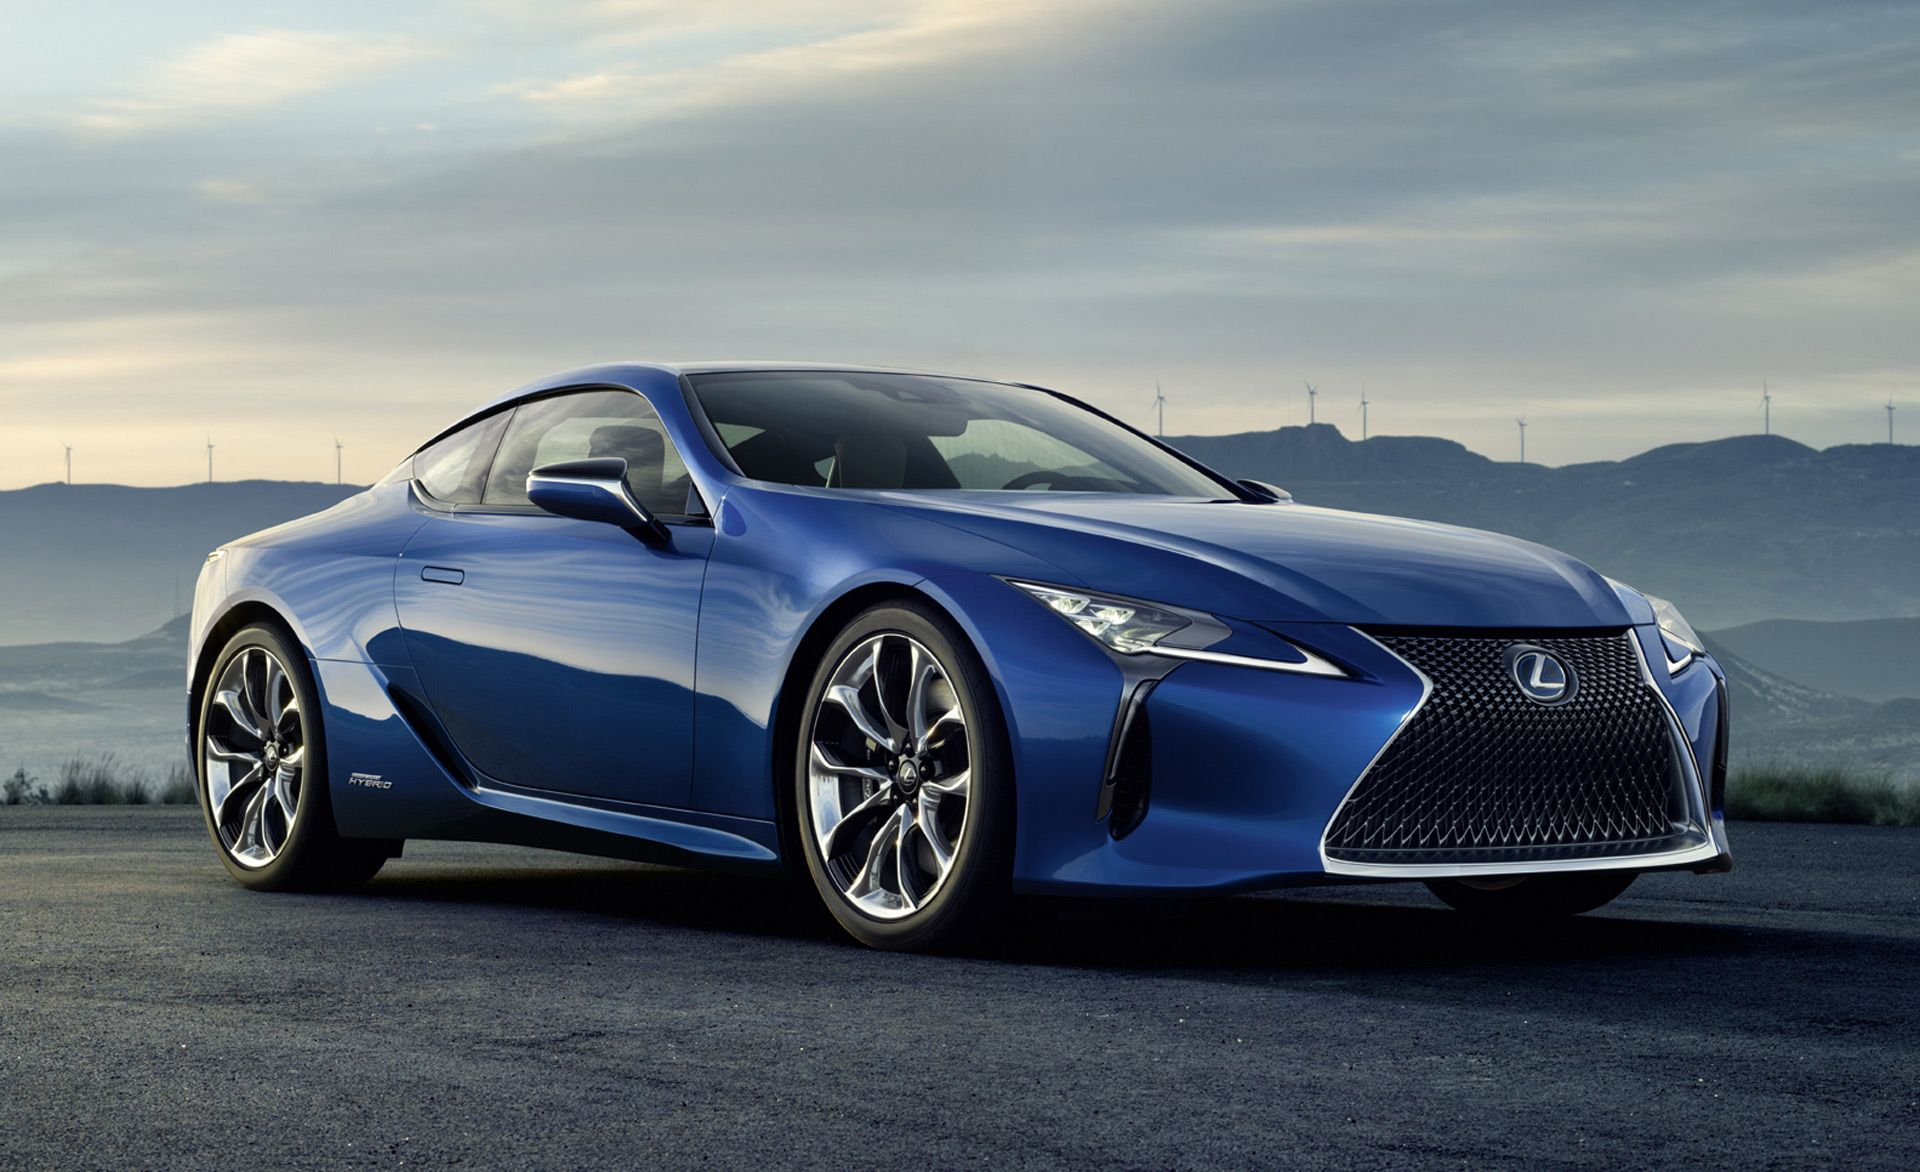 2018 Lexus Lc 500h Debuts At 2016 Geneva Motor Show Live Photos And Video The Car Connection Lexus Lc Luxury Hybrid Cars Lexus Coupe